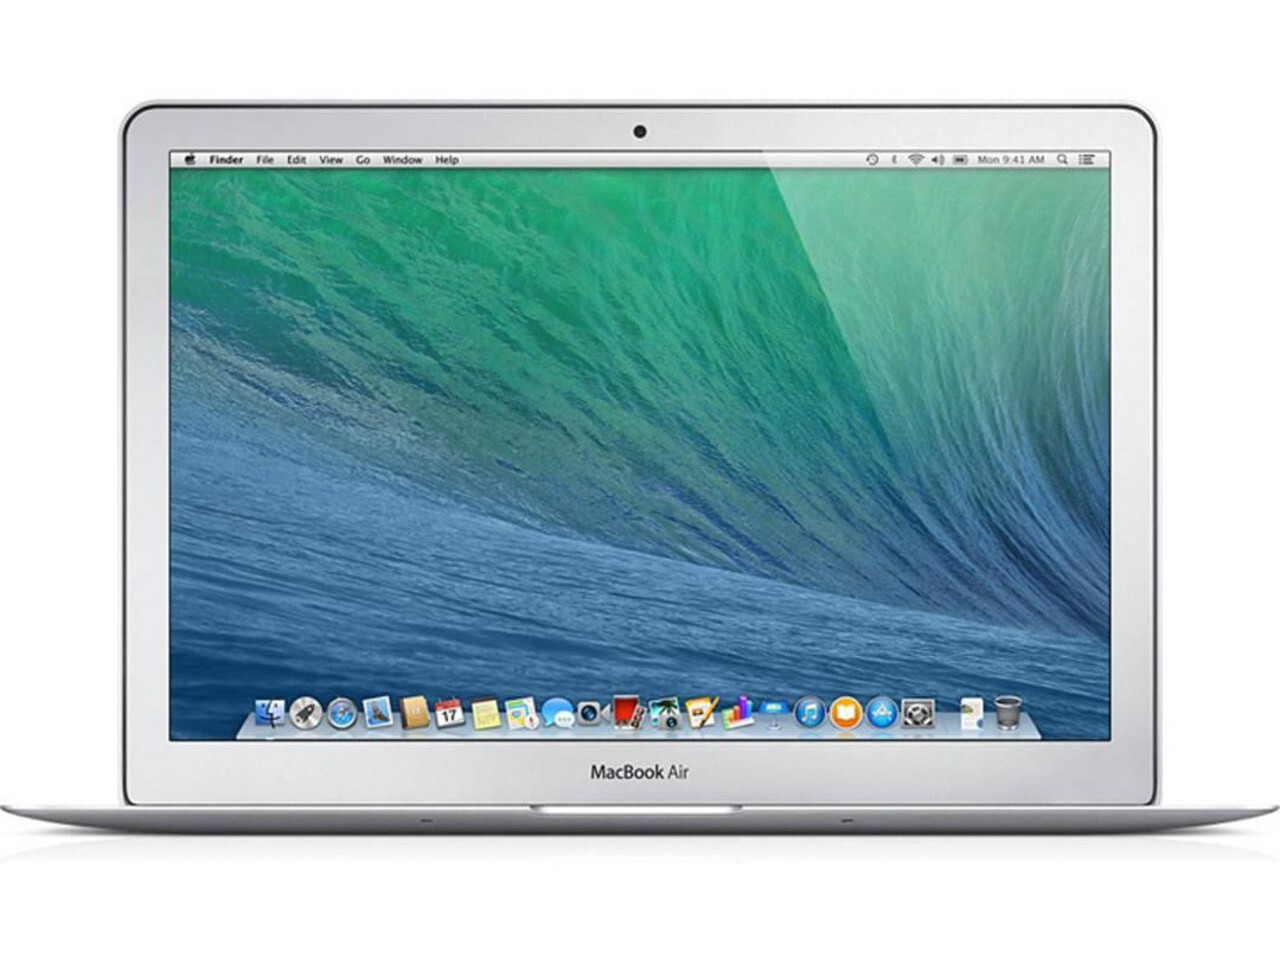 macbook air 11 inch 2012 silver